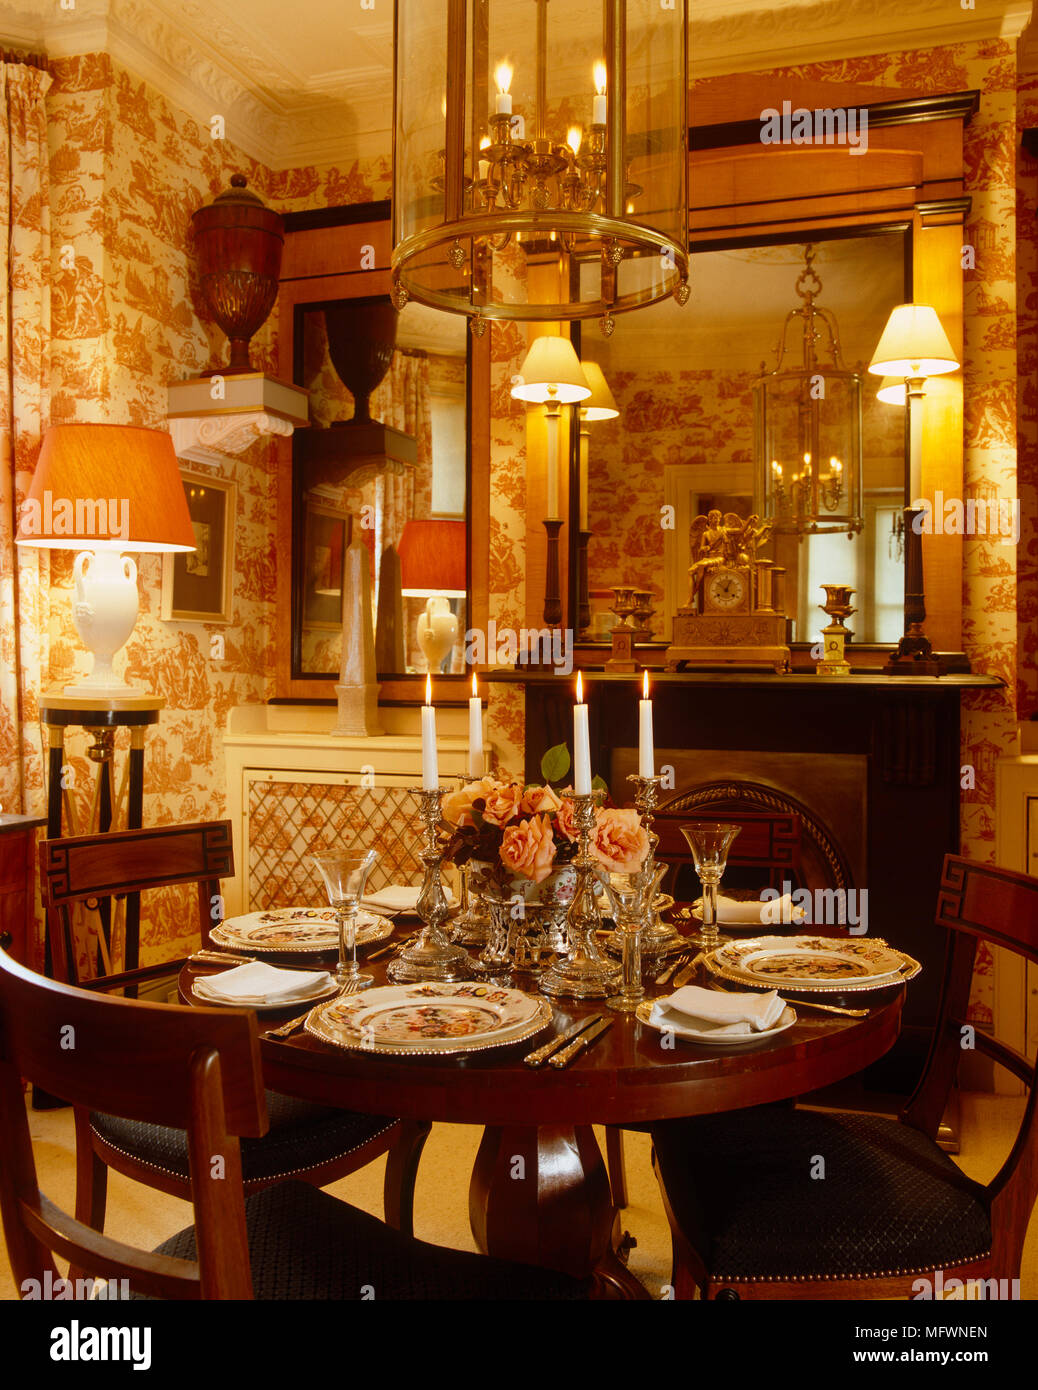 Table set for dinner in traditional style dining room with red ...